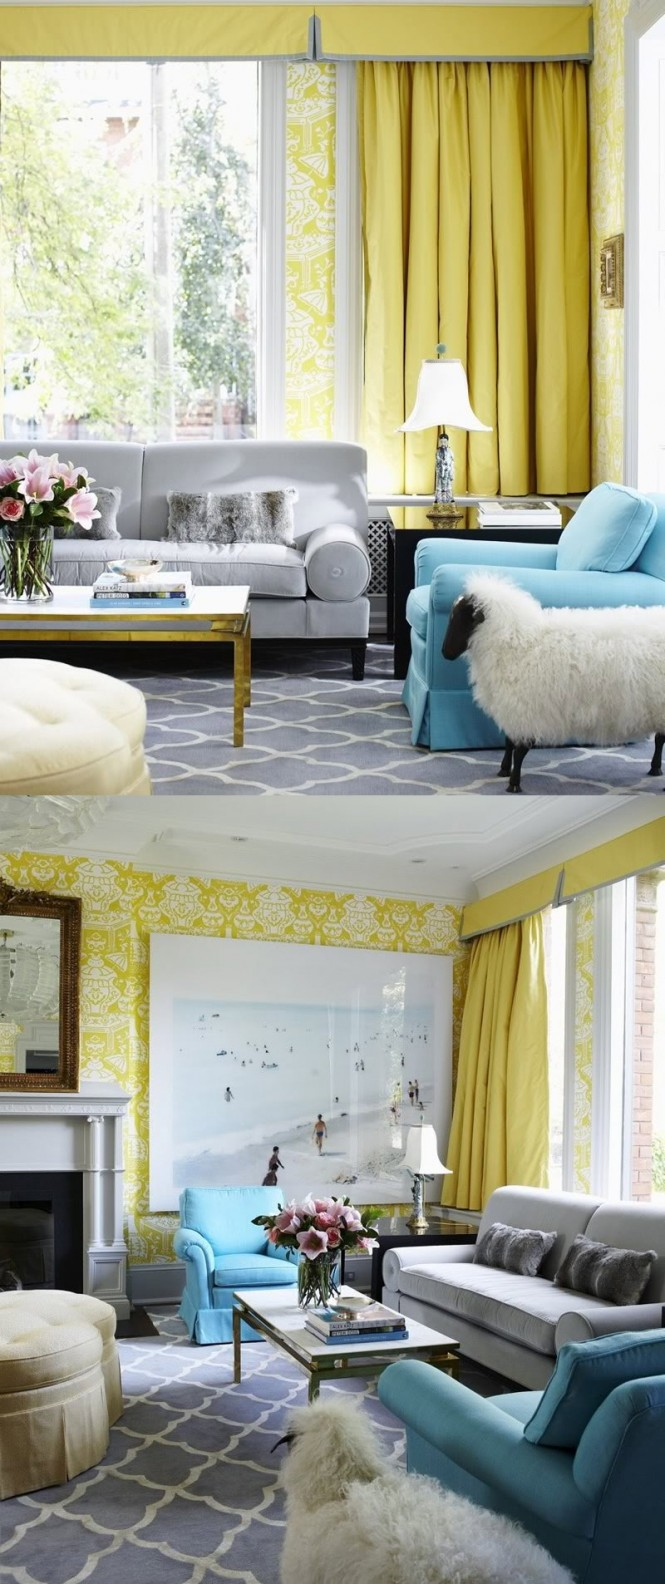 Yellow Room Interior Inspiration: 11+ Rooms For Your Viewing Pleasure